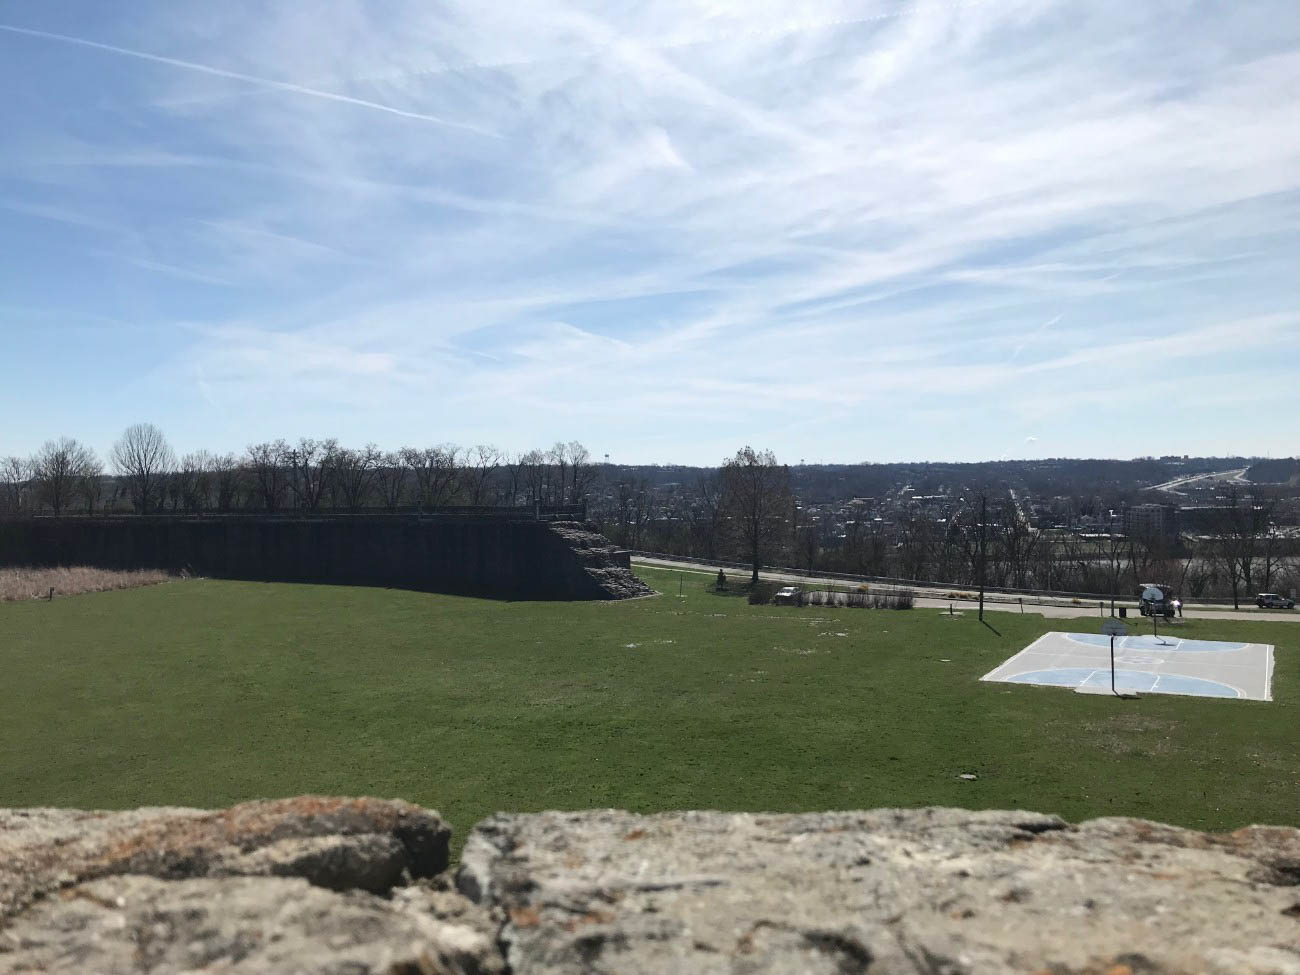 All that resides in the lower basin are the remnants of the retaining walls and a lonely basketball court in the wide-open field. The sloping ravine is a popular sledding hill in the winter months. / Image: Amy Bauer // Published: 4.12.19